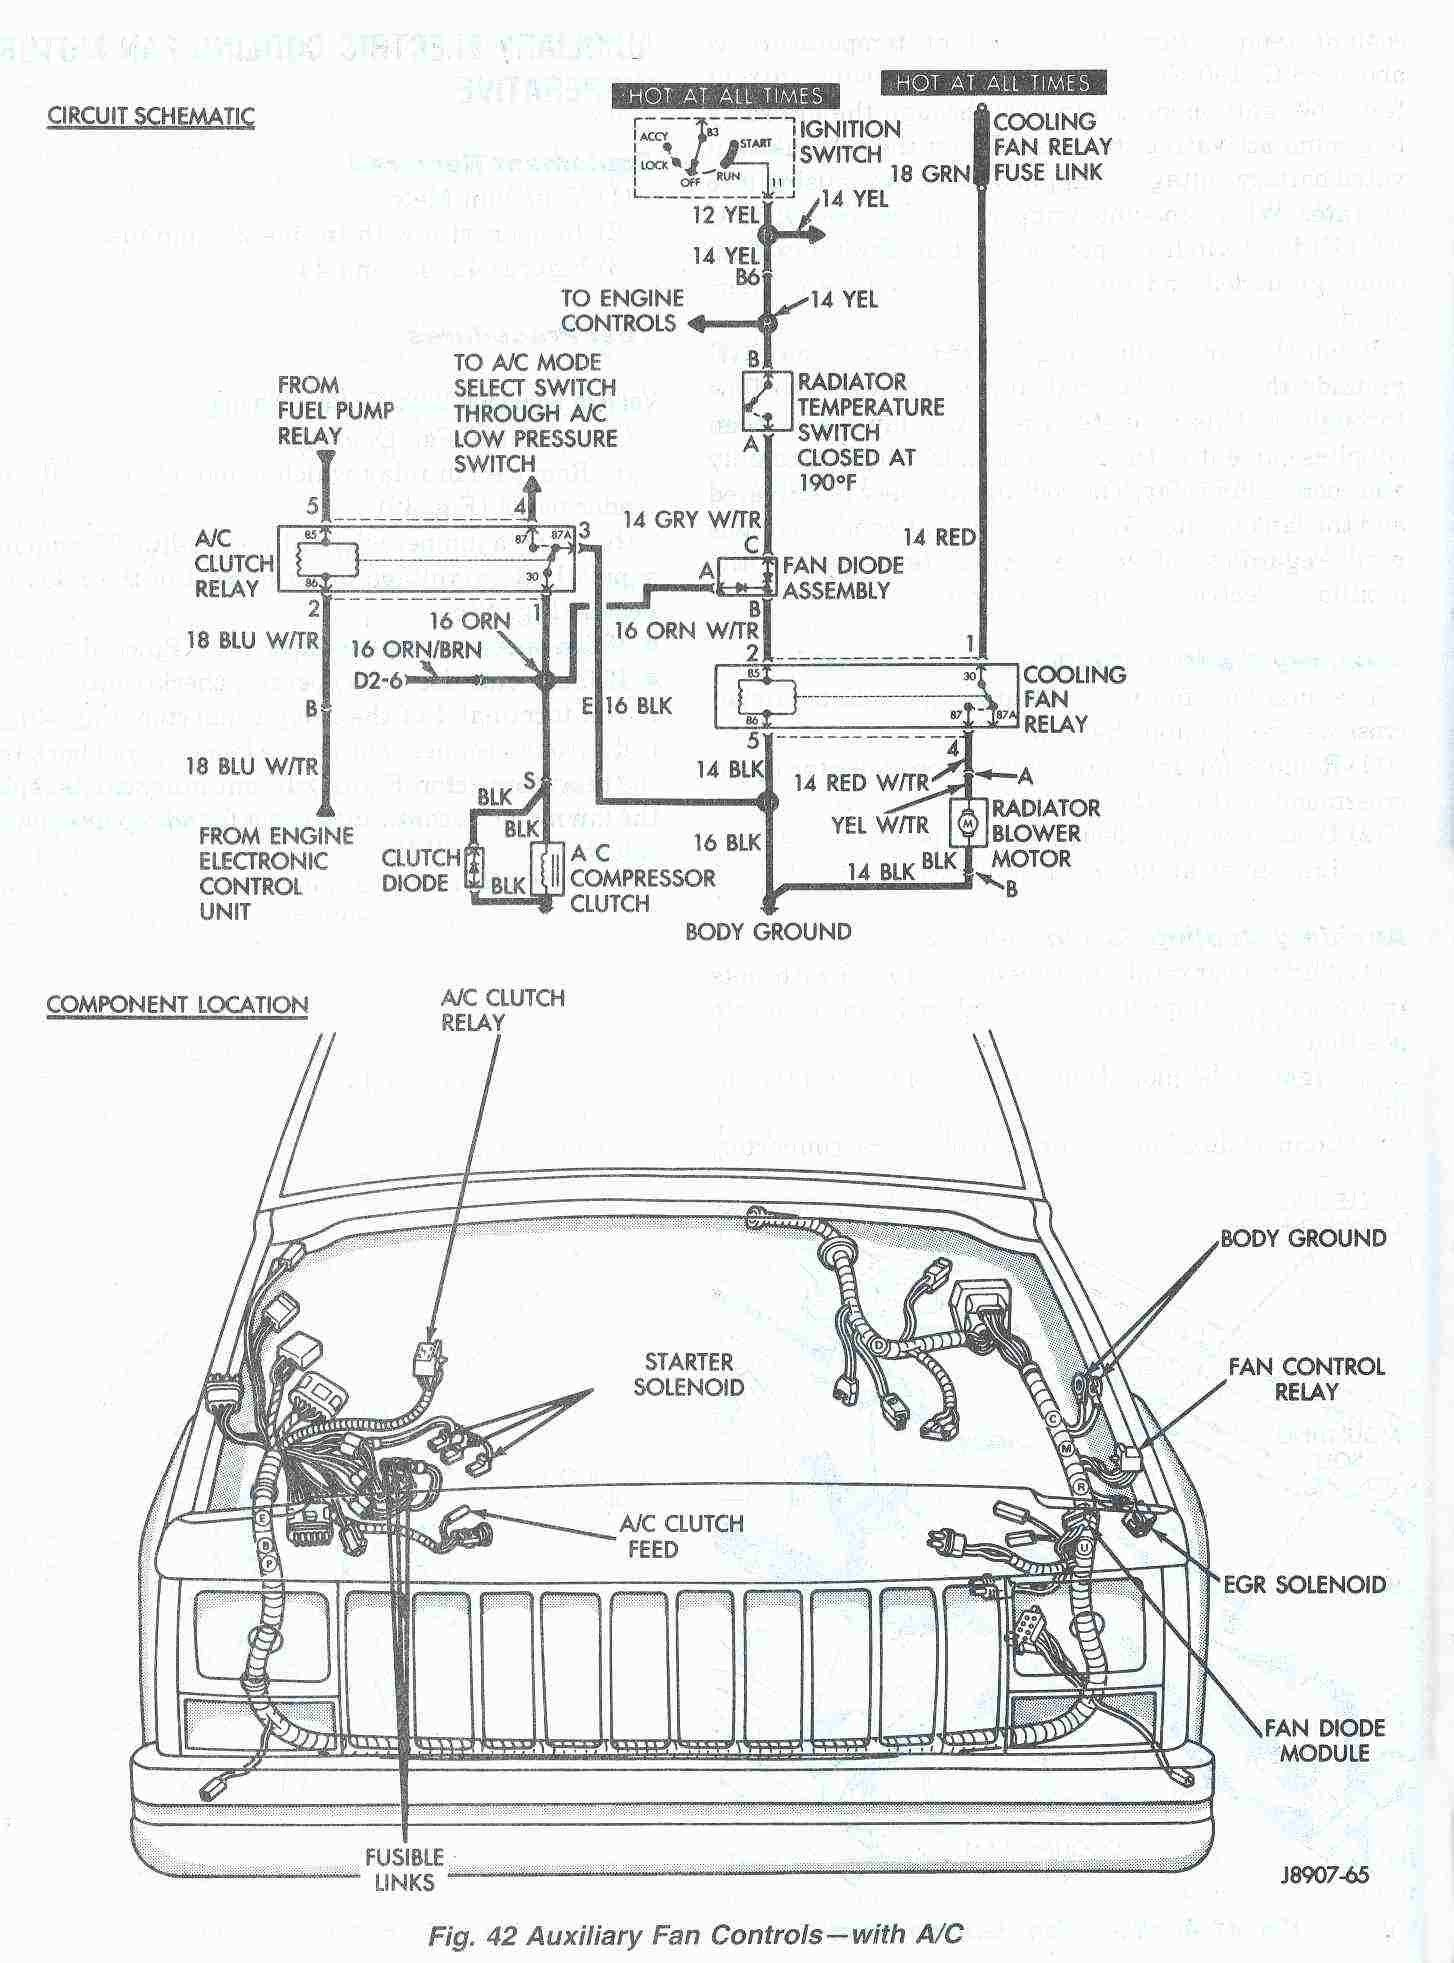 Unique Ac Circuit Diagram Diagram Wiringdiagram Diagramming Diagramm Visuals Visualisation Graphic Jeep Cherokee Jeep Grand Cherokee Jeep Cherokee Sport